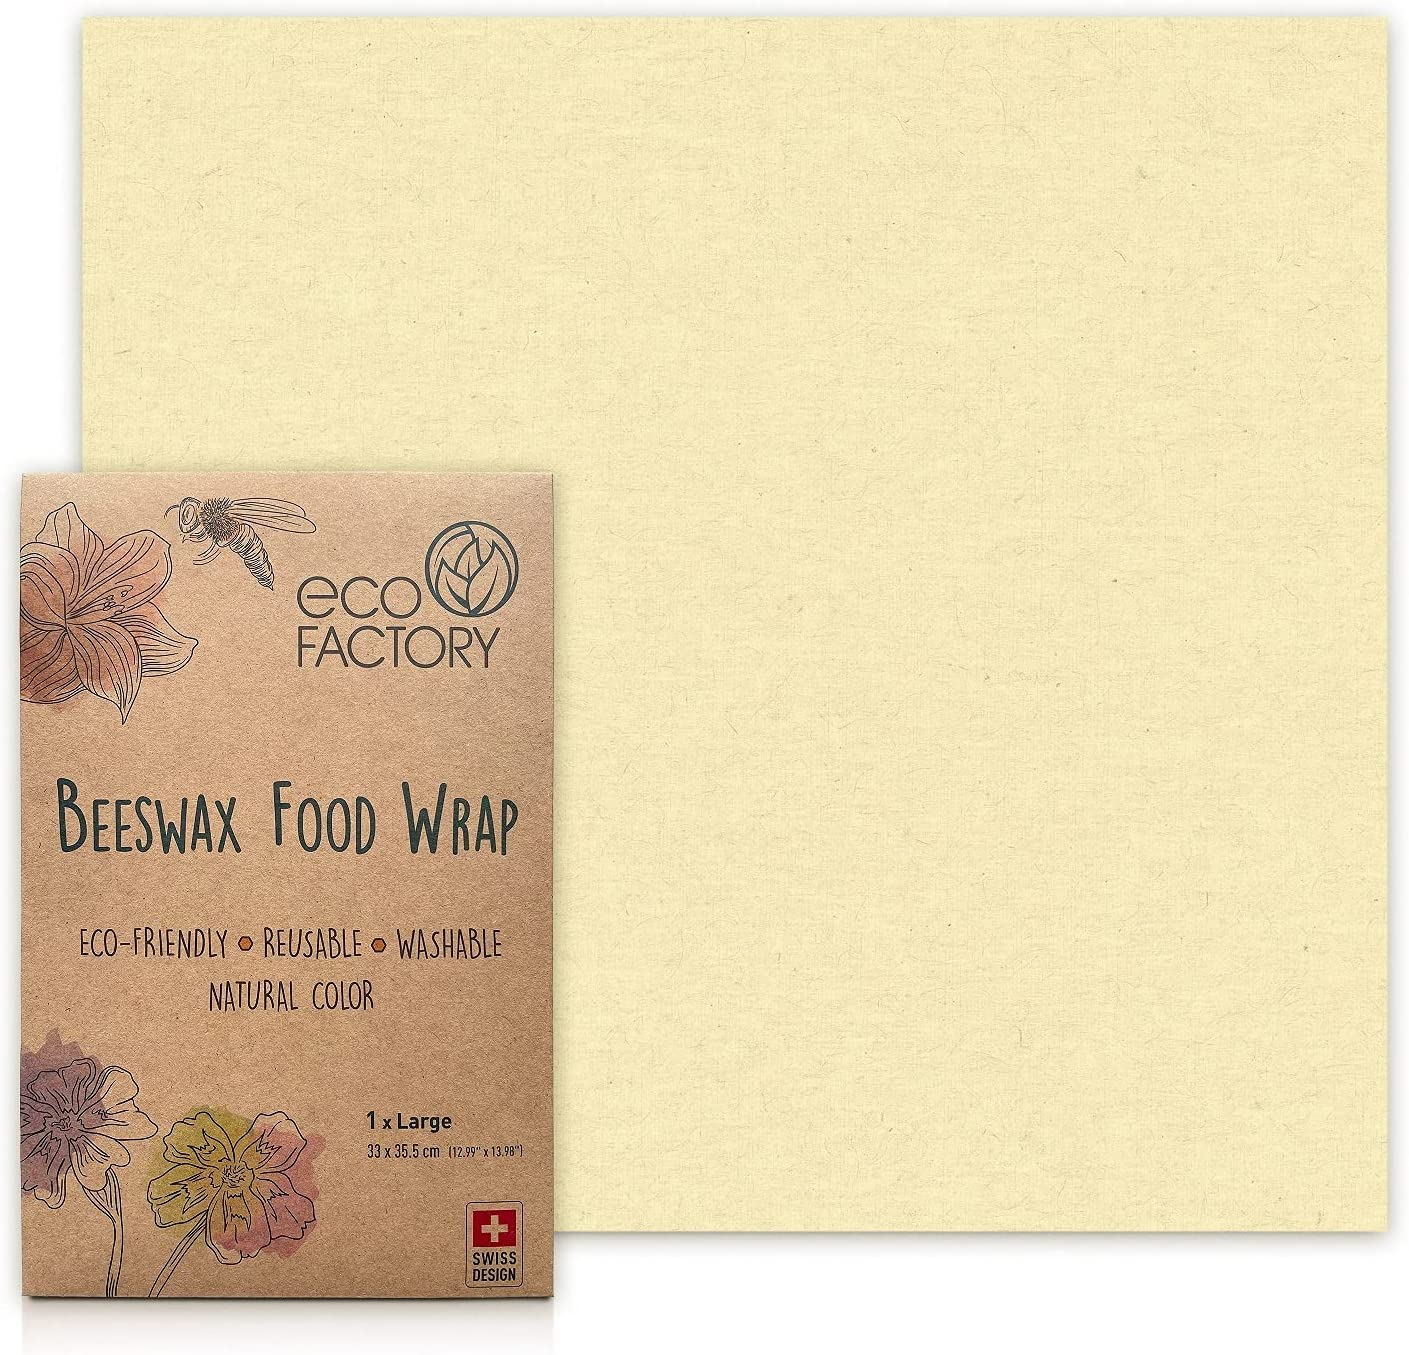 ECO FACTORY Beeswax Food Wrap - All-Natural Large Wrap for Food Storage - Wax Wrap - Bowl Cover - Beeswax Paper - Organic, Reusable, Washable and Sustainable - Certified - Designed in Switzerland